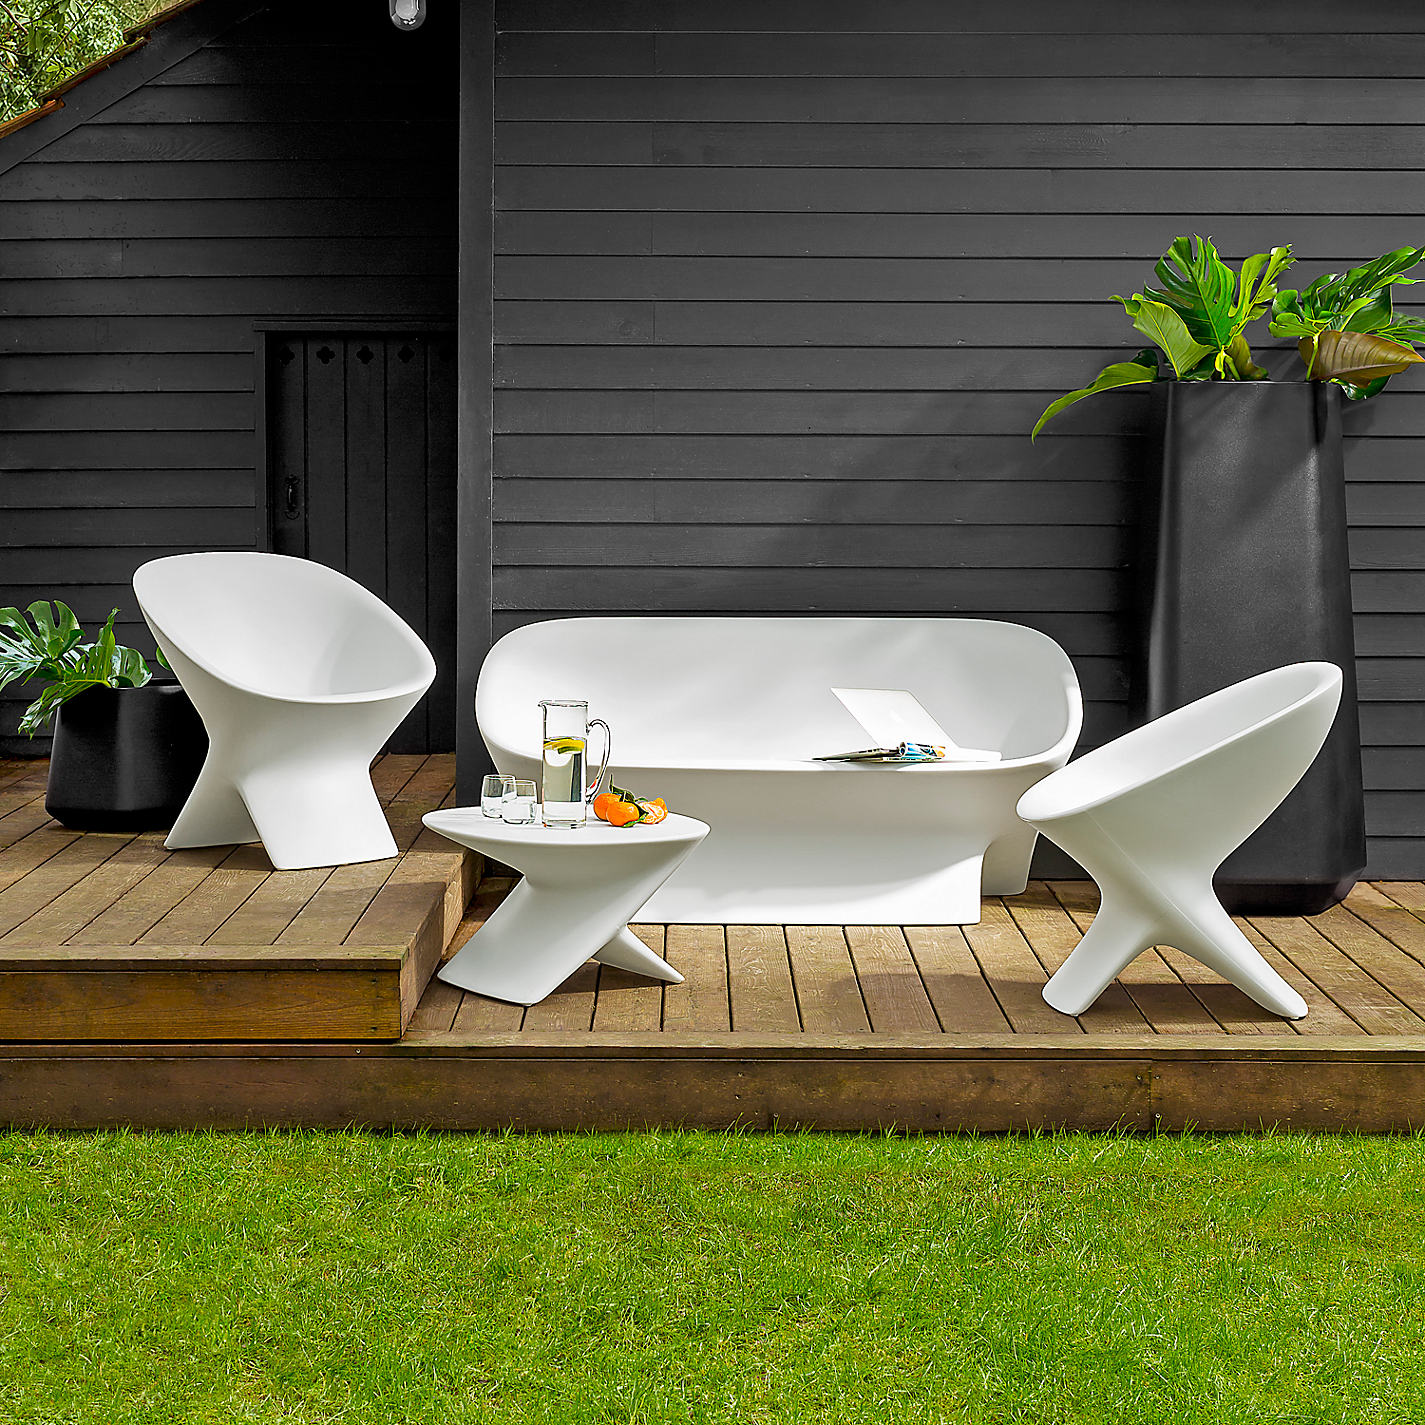 Recycled Garden Furniture from Mad About The House